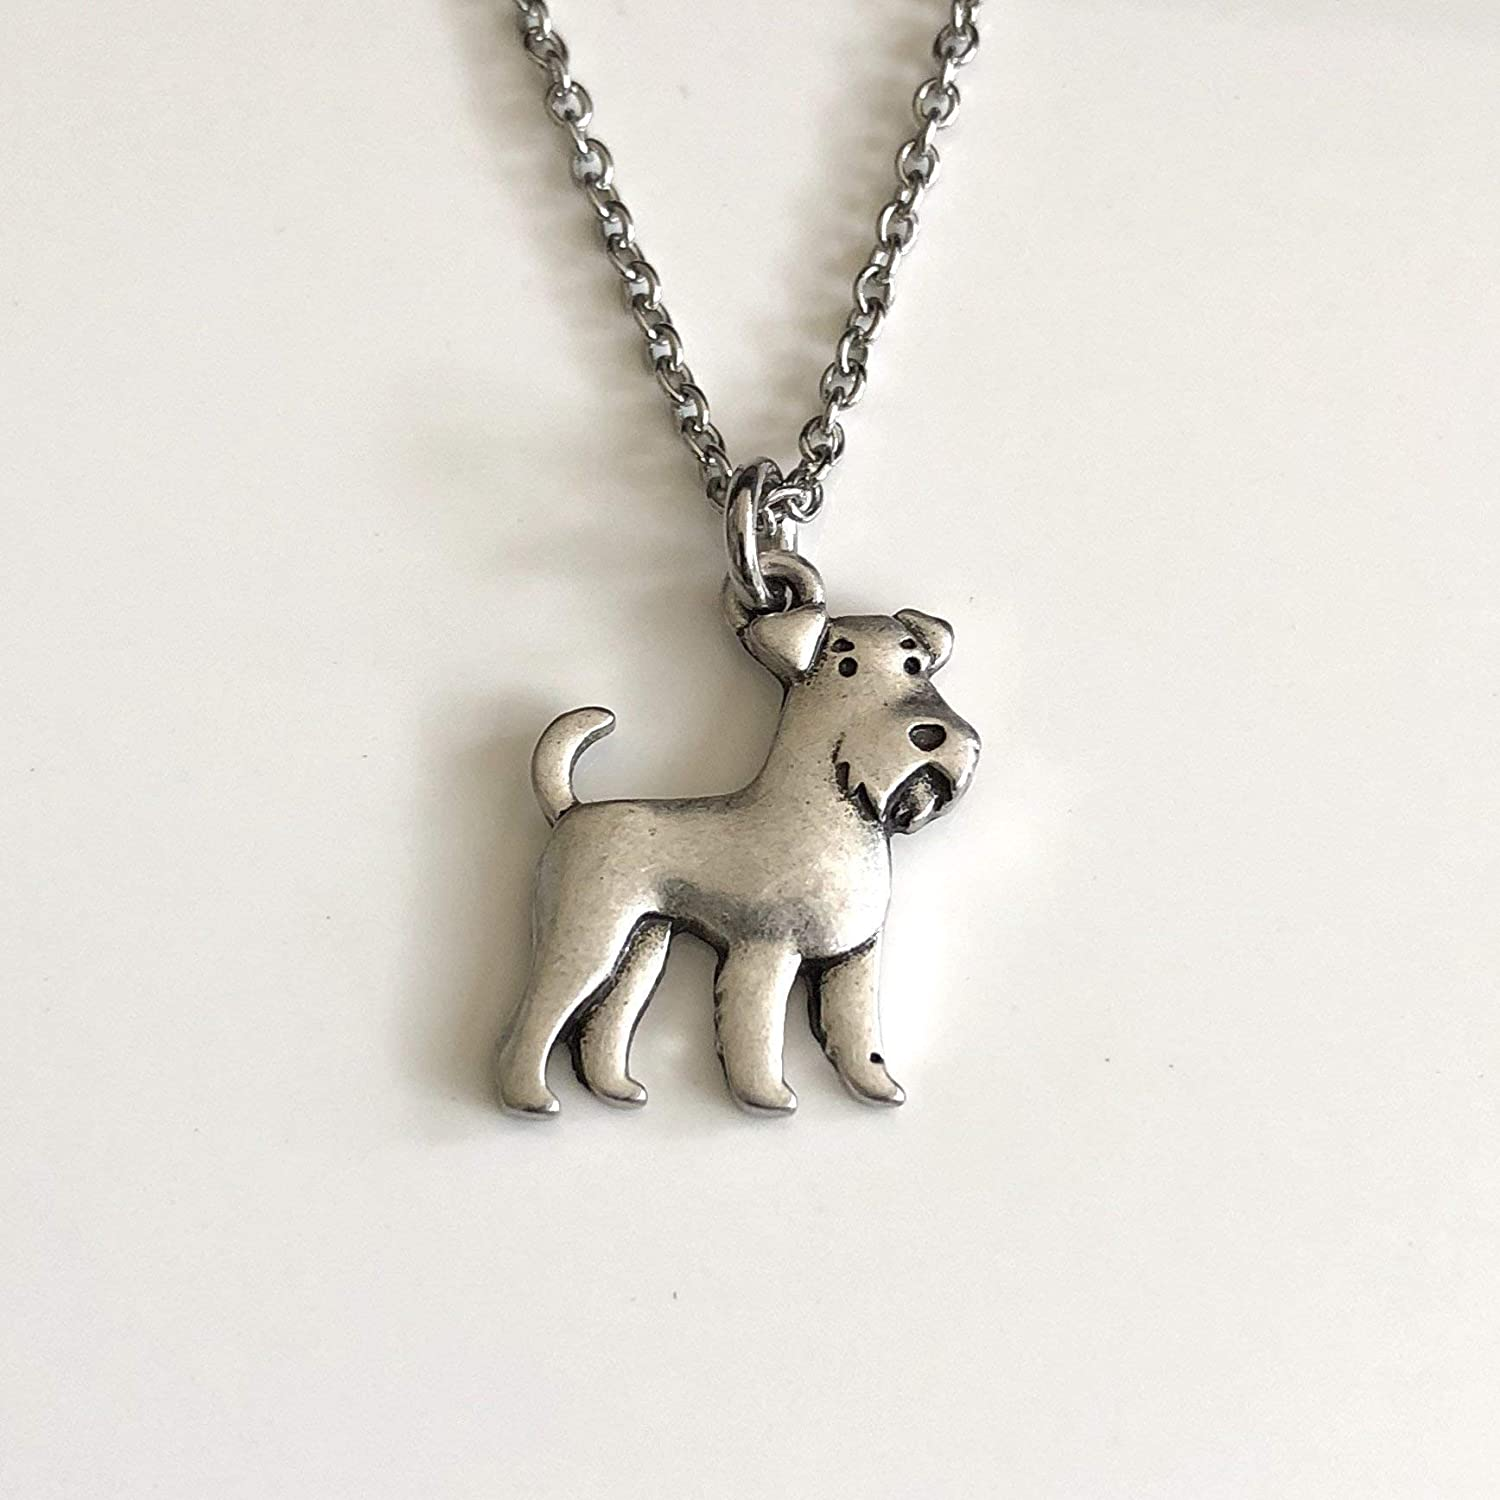 """AIREDALE WELSH TERRIER DOG PENDANT NECKLACE WITH 18/"""" SILVER CHAIN"""